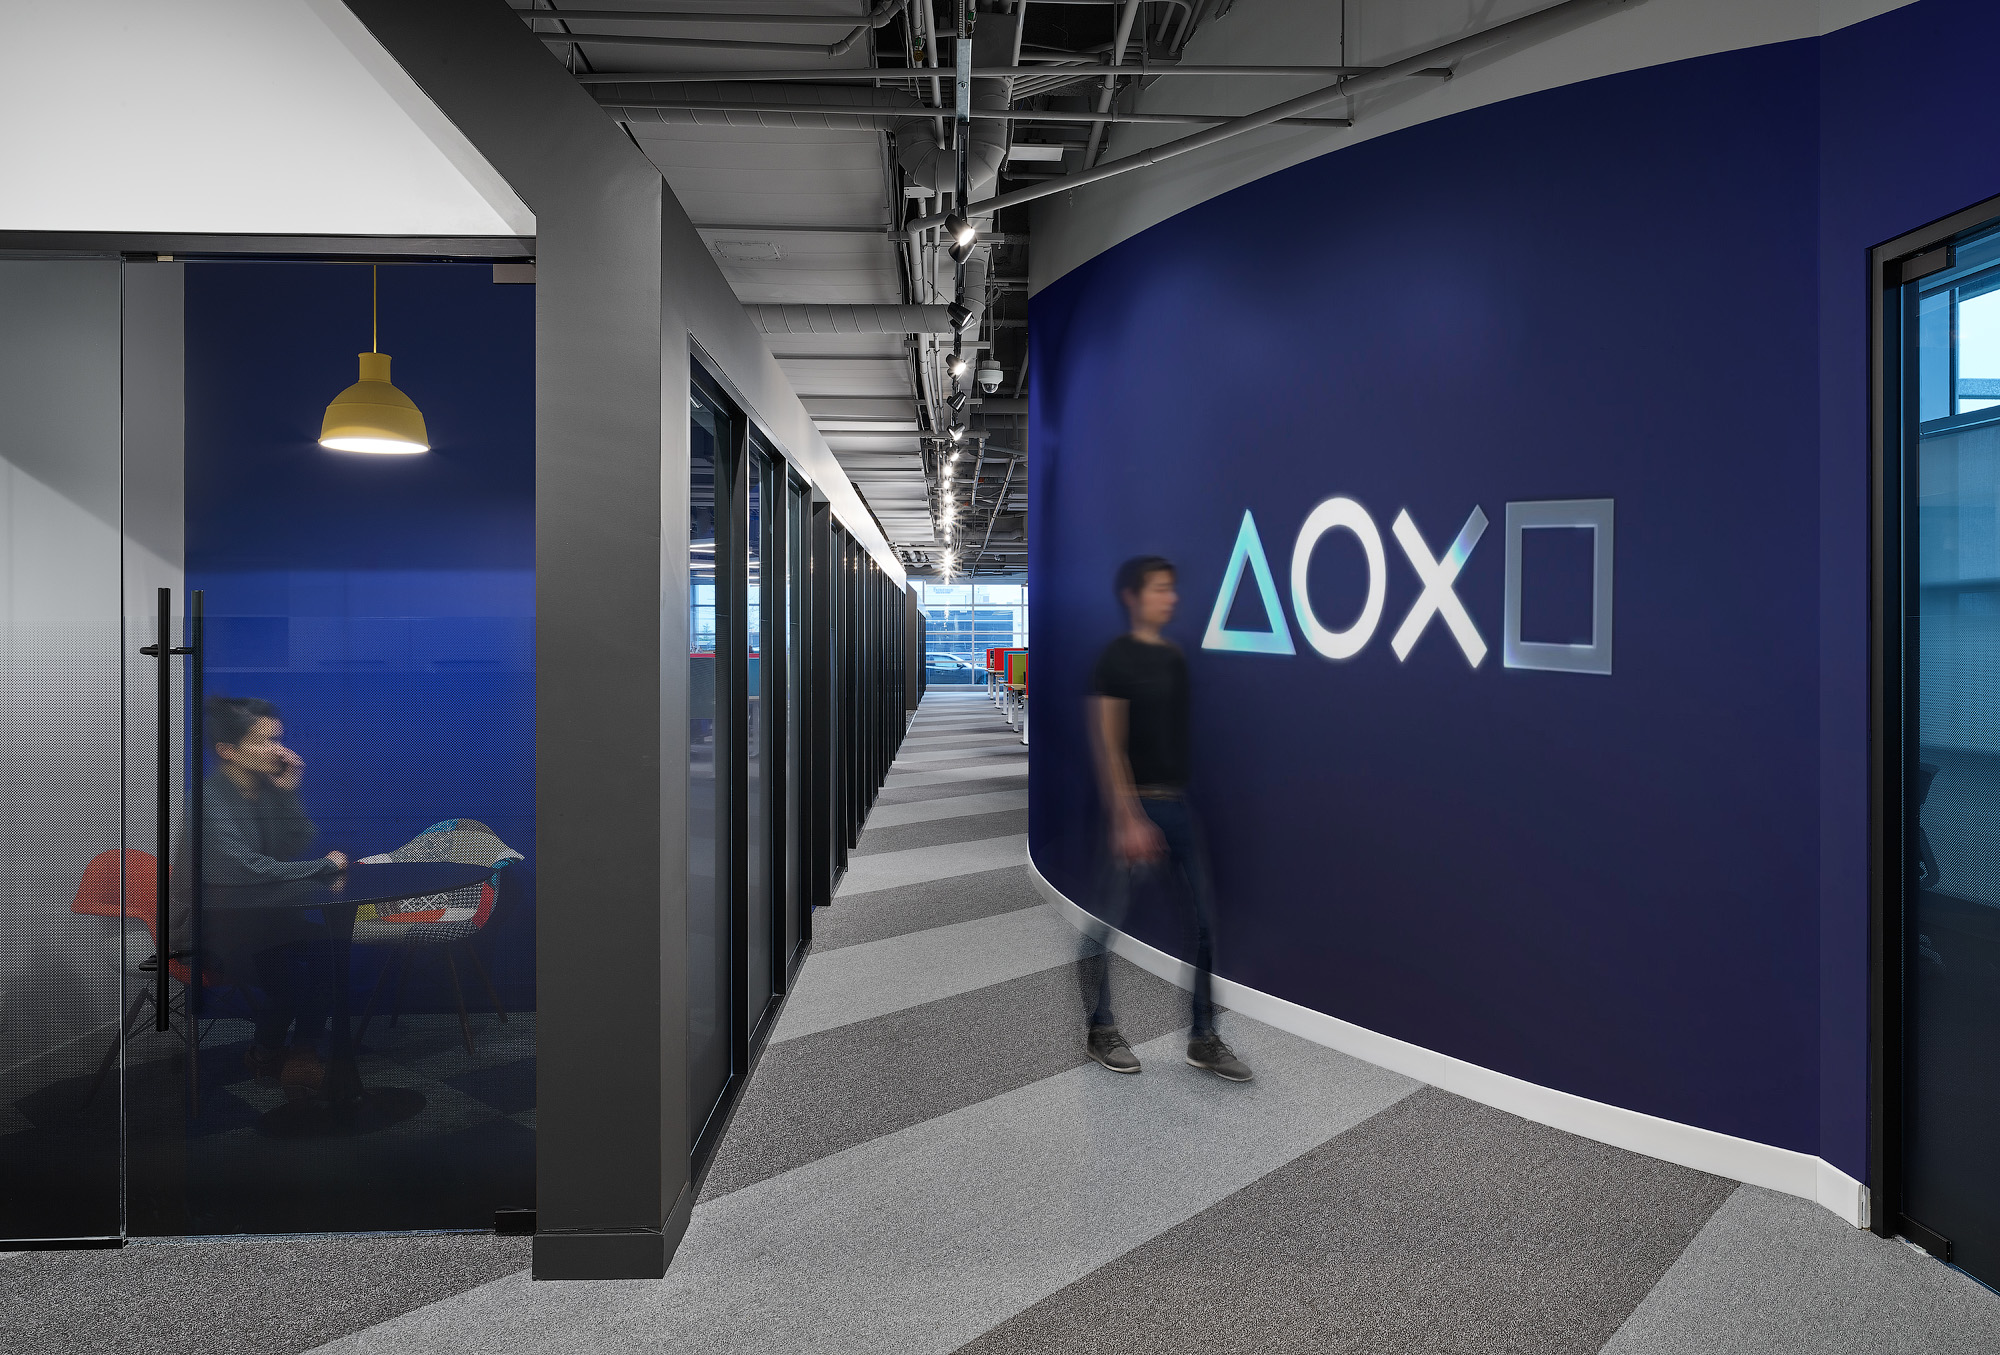 Sony SIE Toronto office lobby, blue wall with Playstation logo